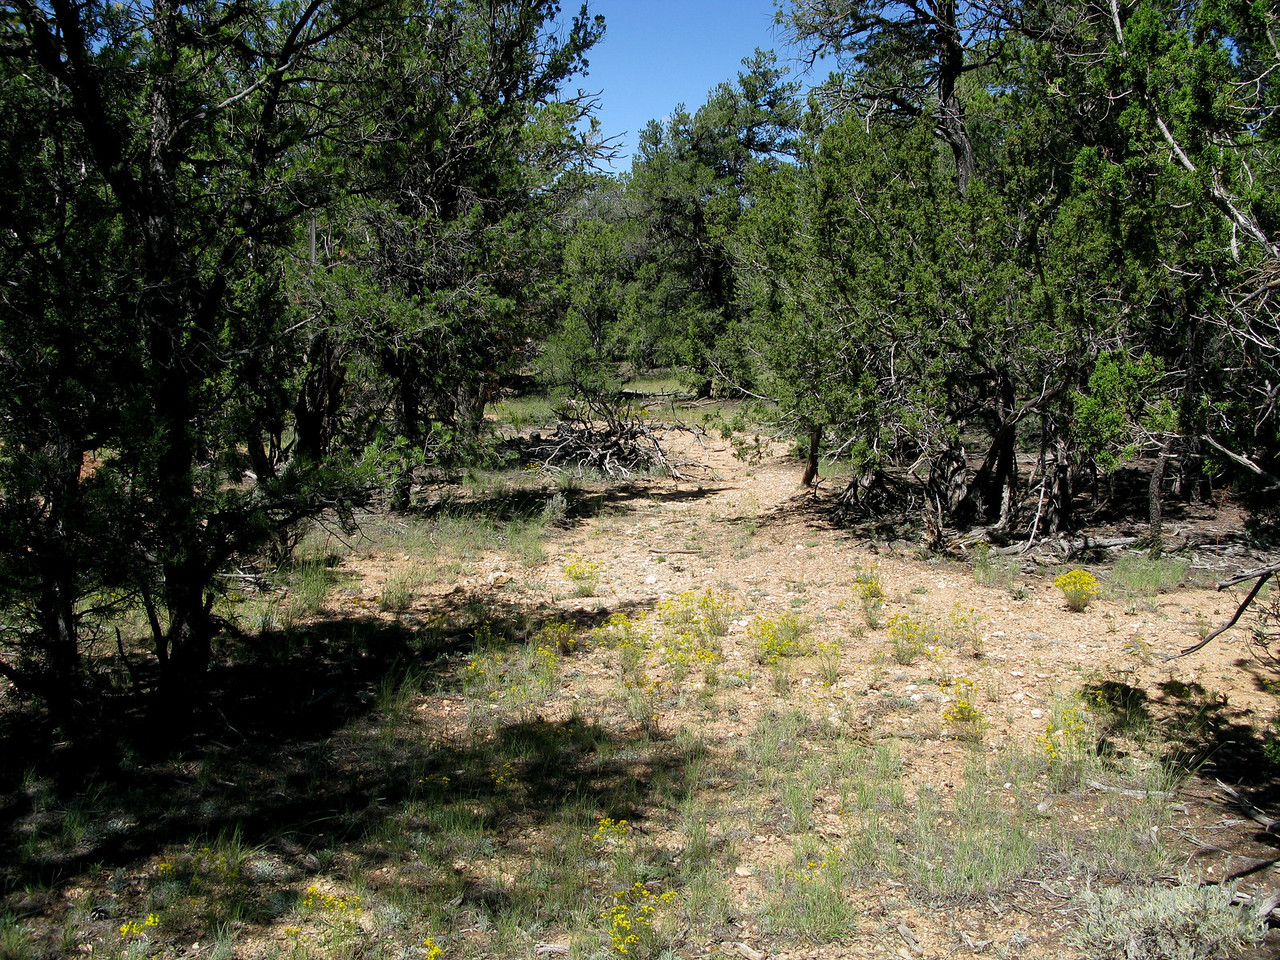 This firebreak located near the first tree impact was cut by forest service crews at the time of the accident to keep the fire from spreading.